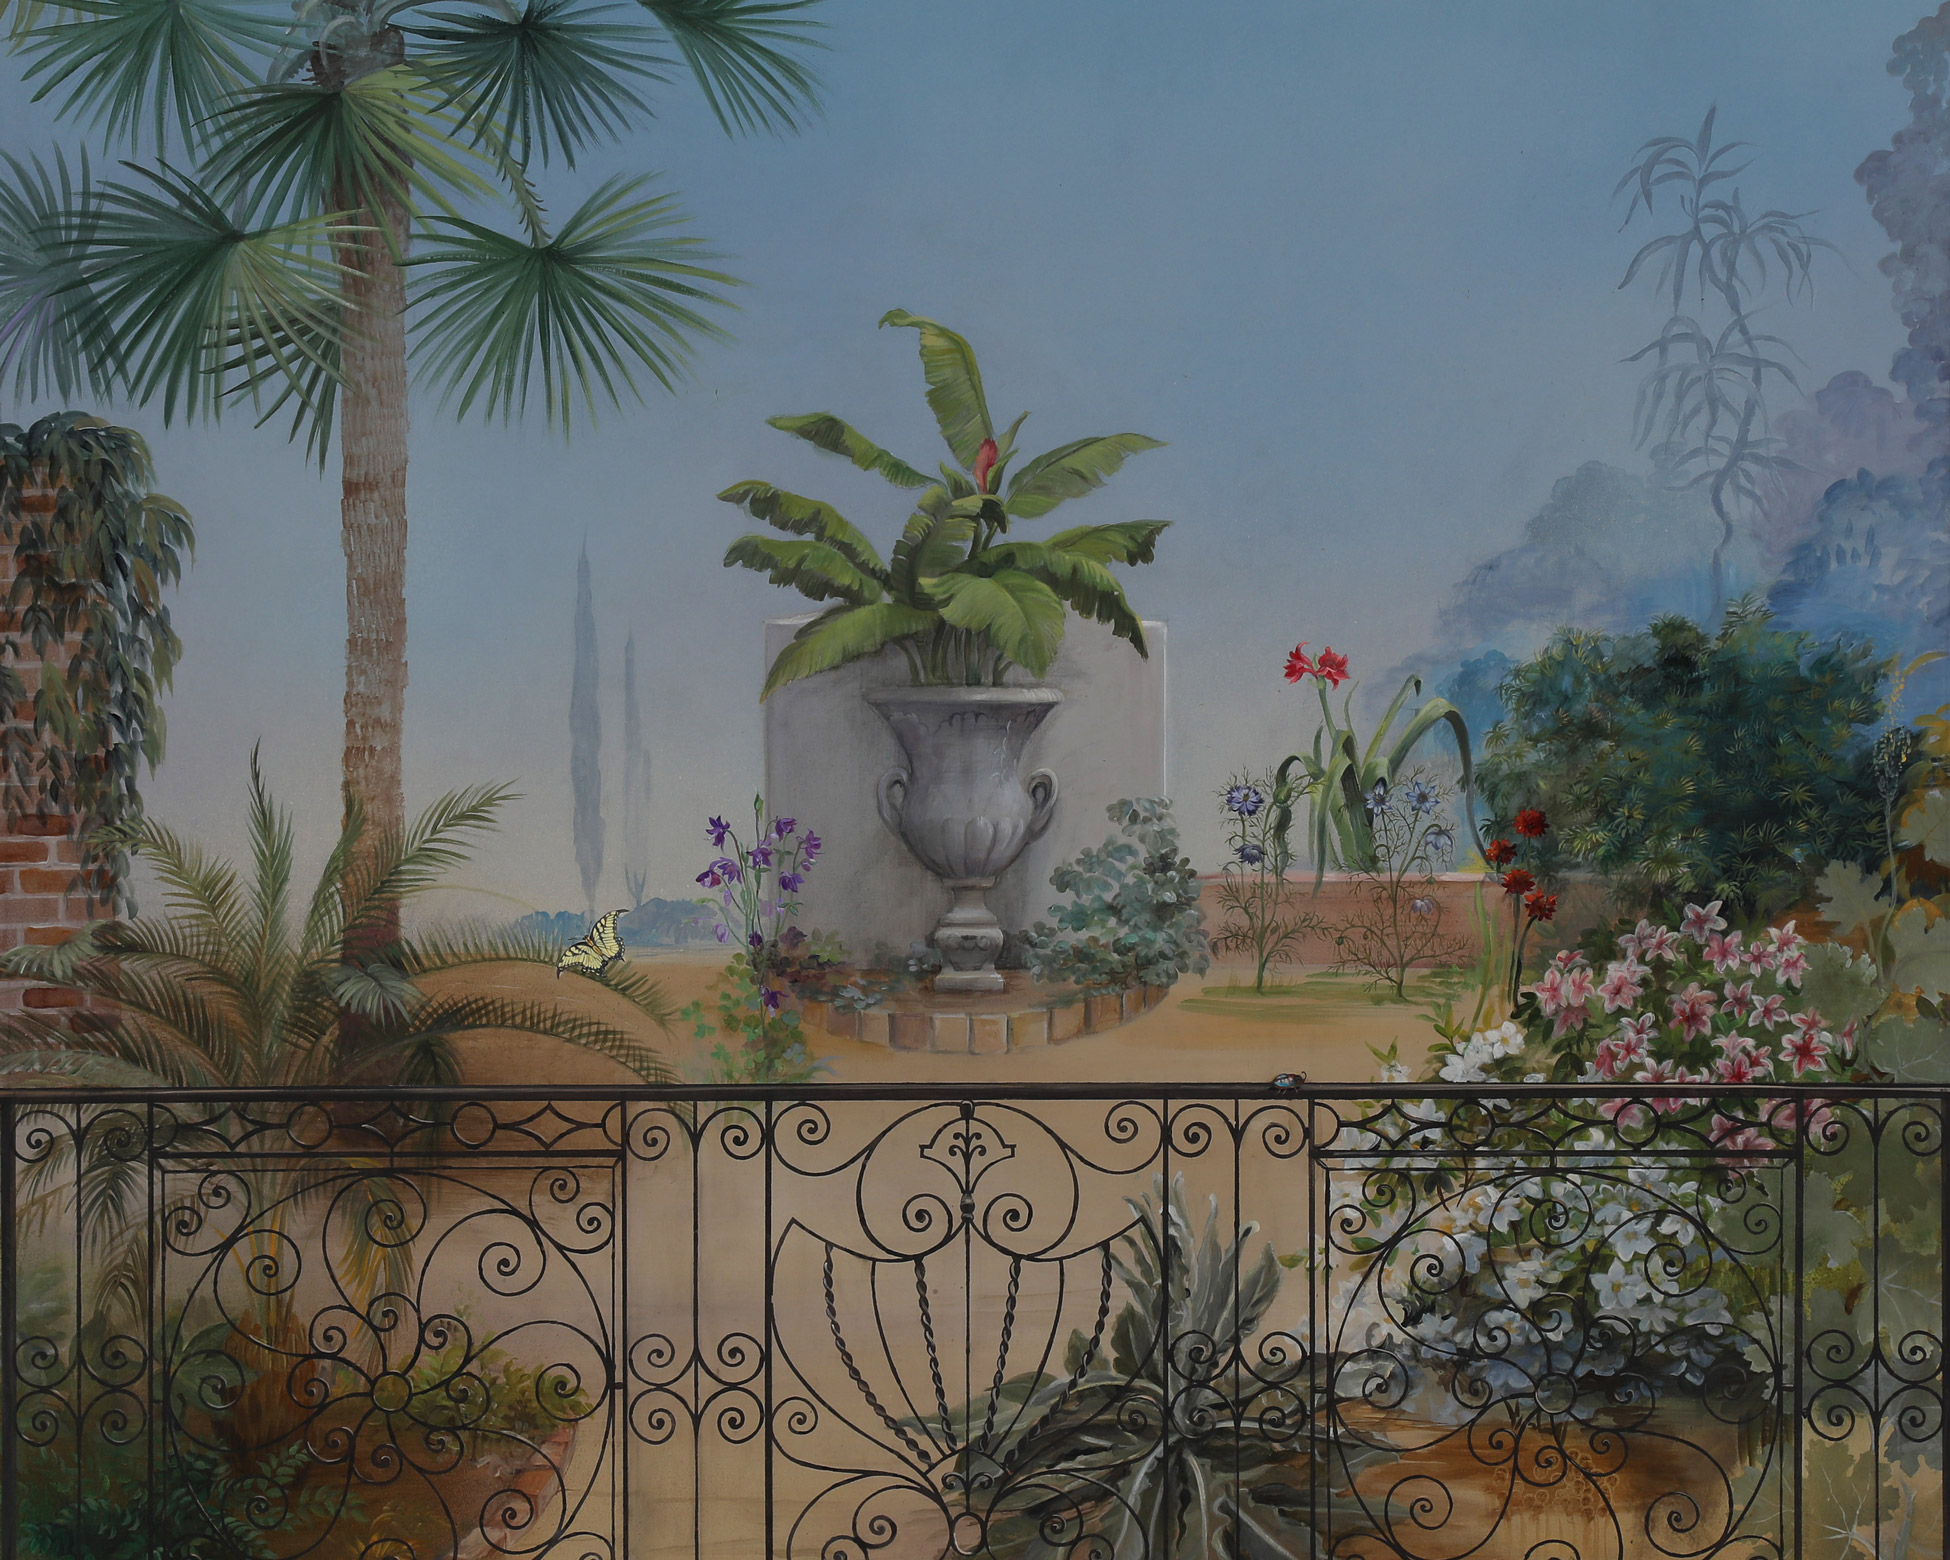 Low country mural with palms, flowers and wrought iron fence detail